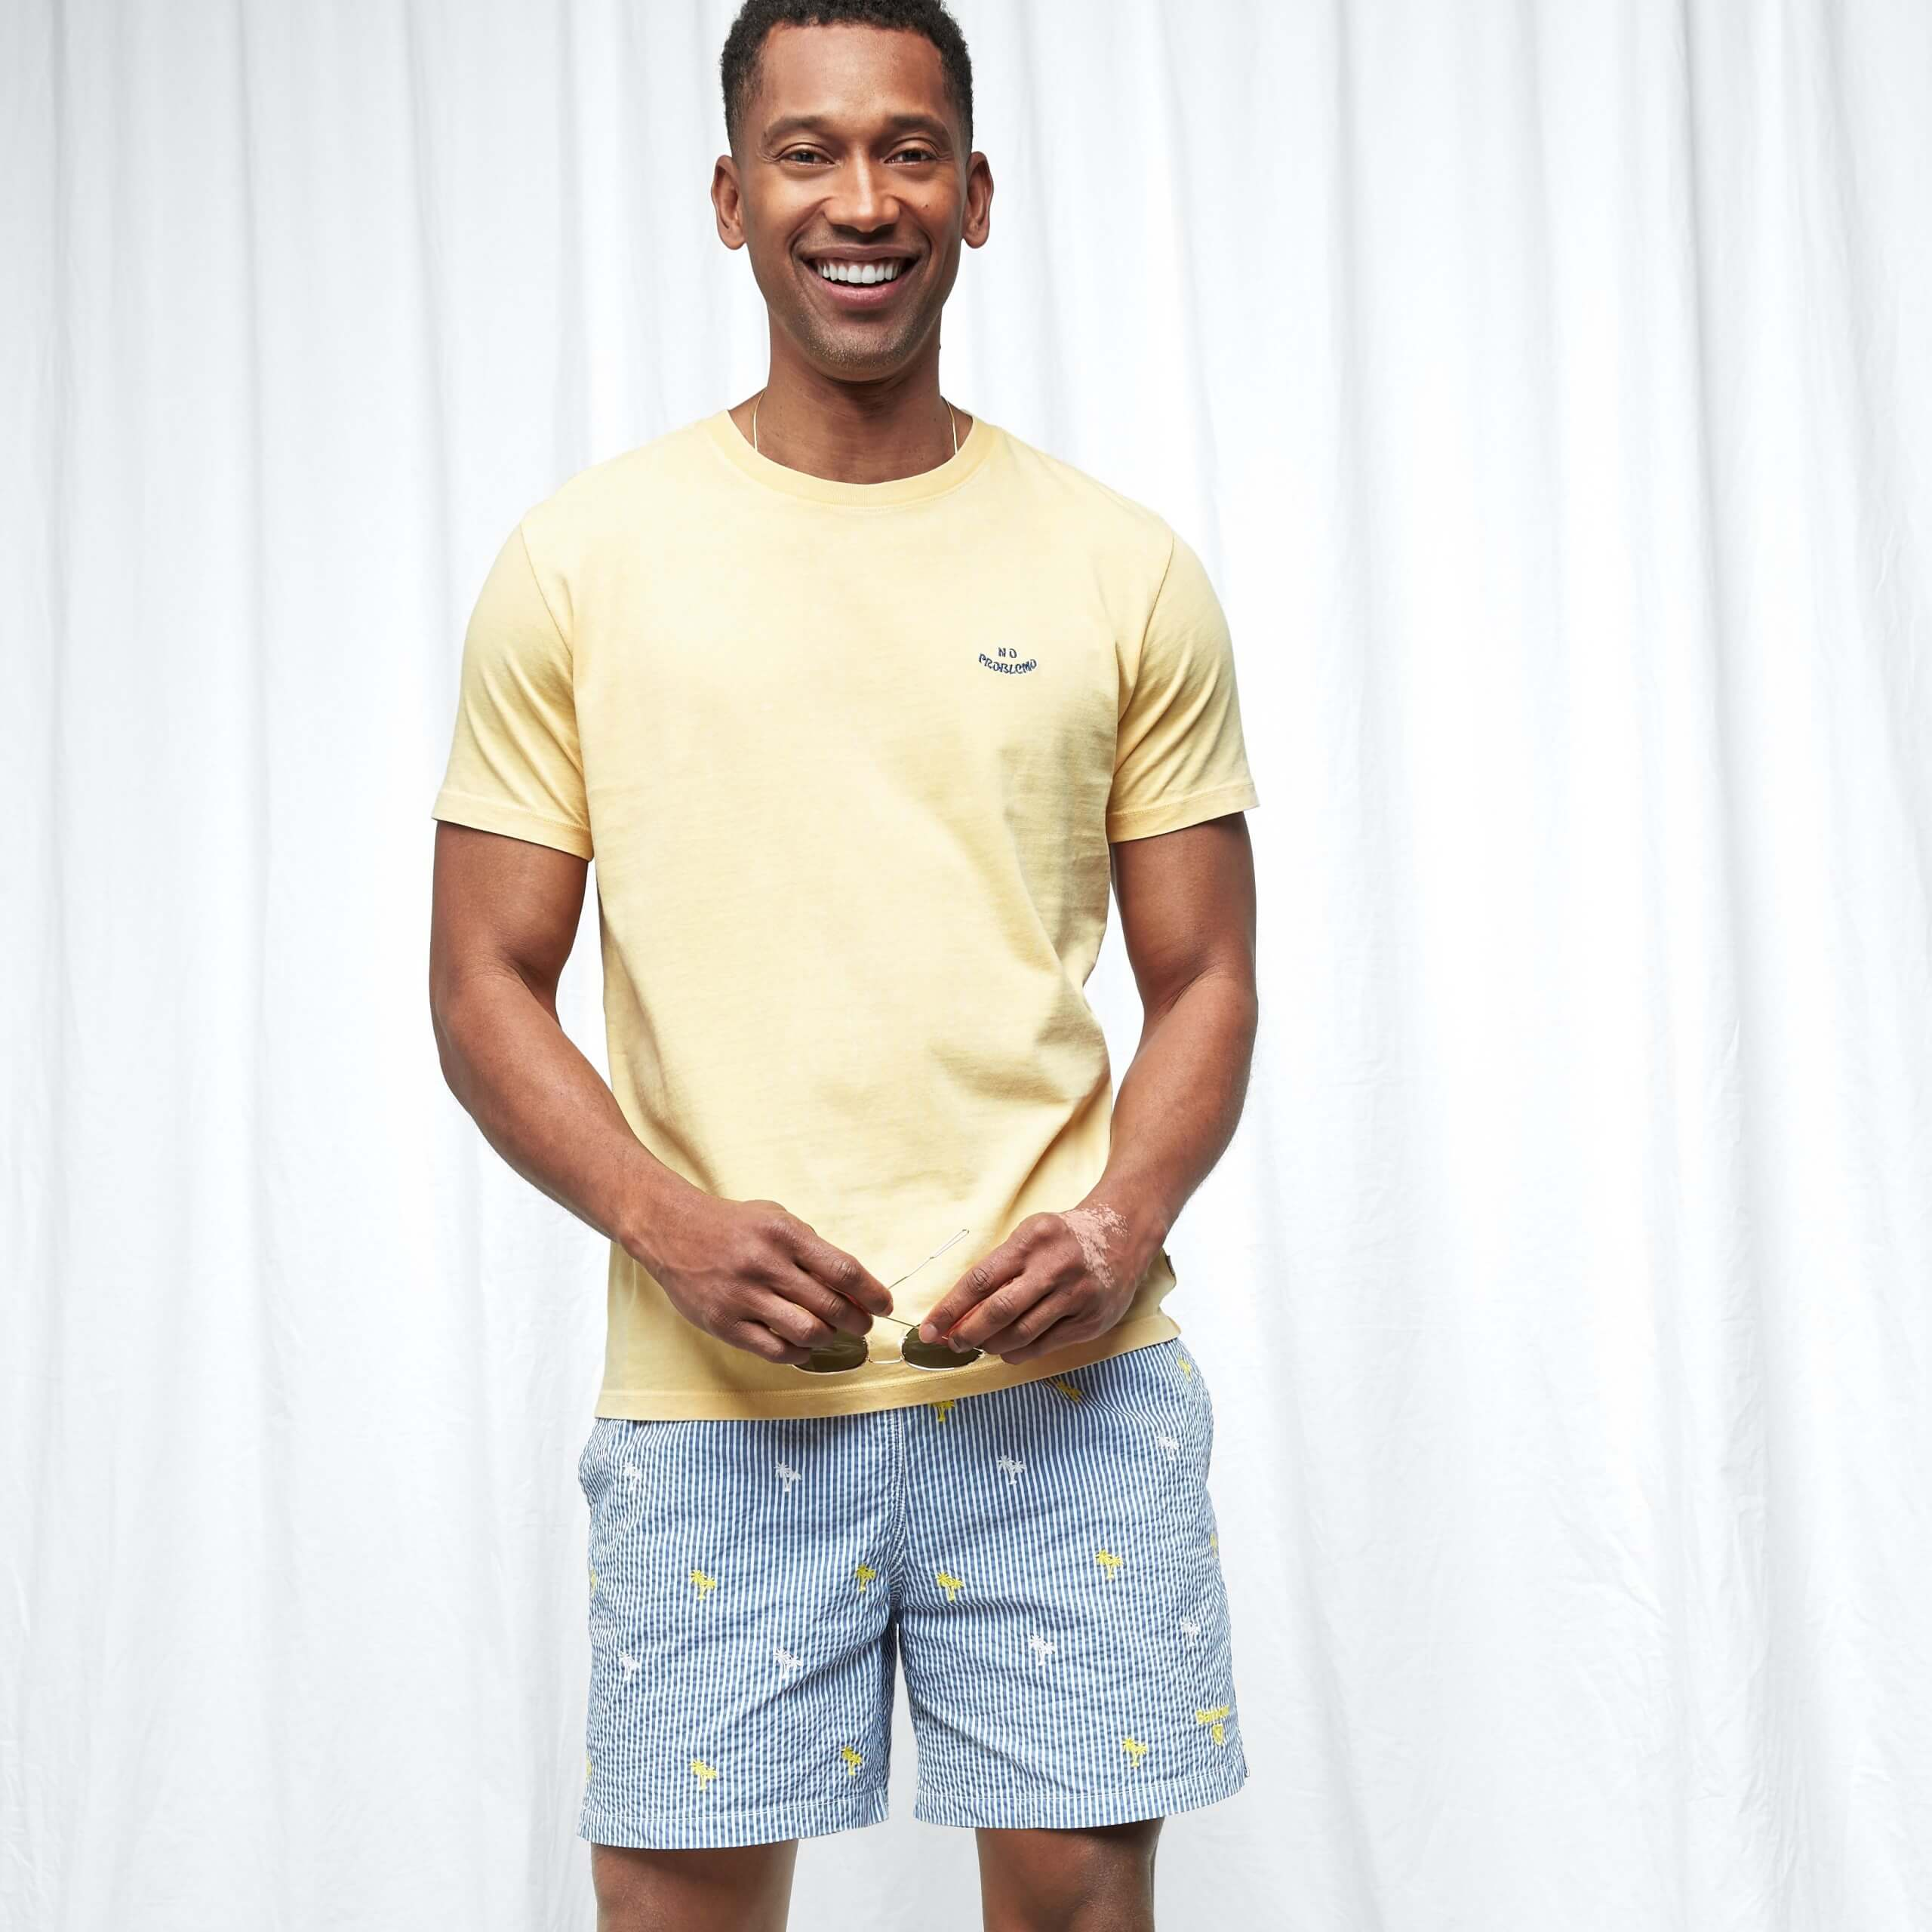 Stitch Fix Men's model wearing yellow t-shirt and blue shorts with palm tree details.